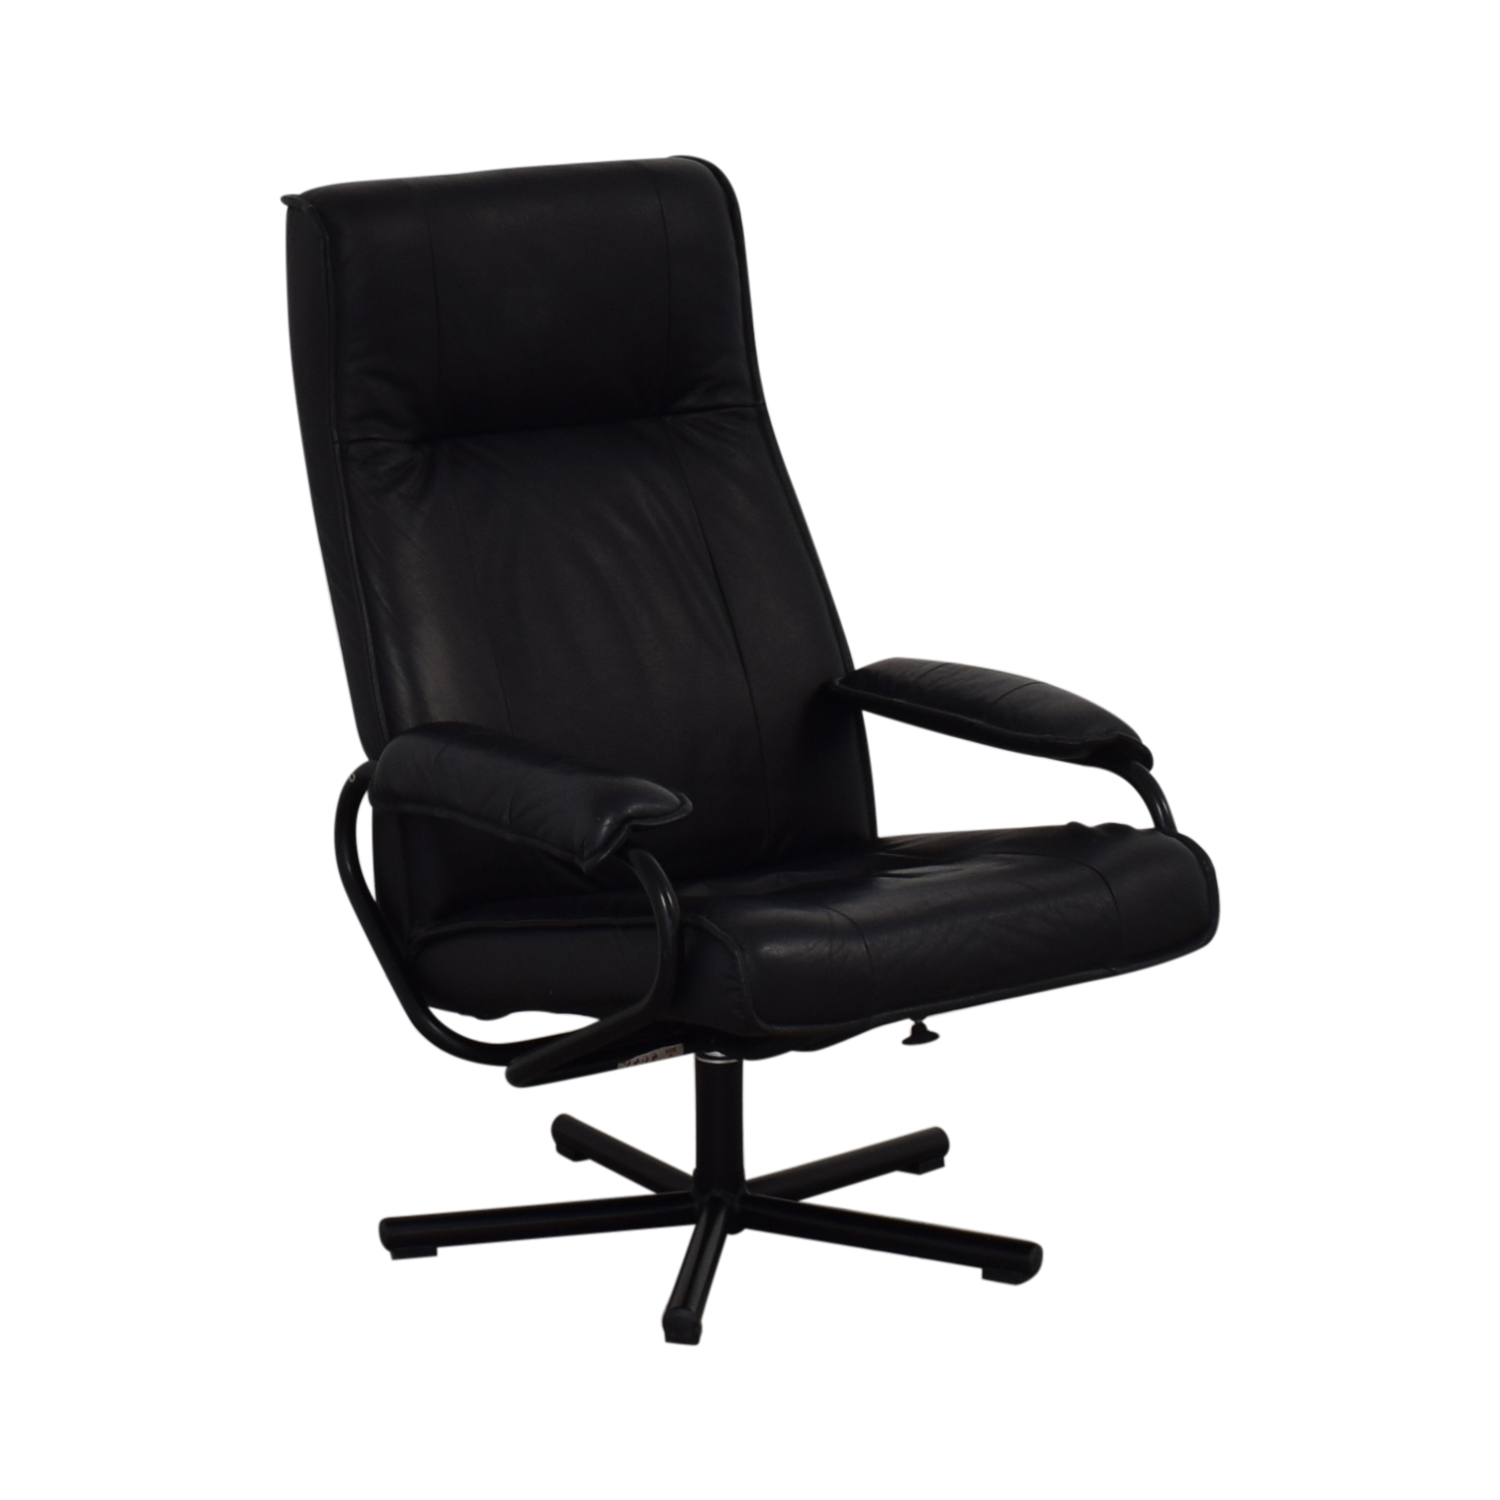 KEBE Kebe Danish Leather Lounge Chair and Footstool nj